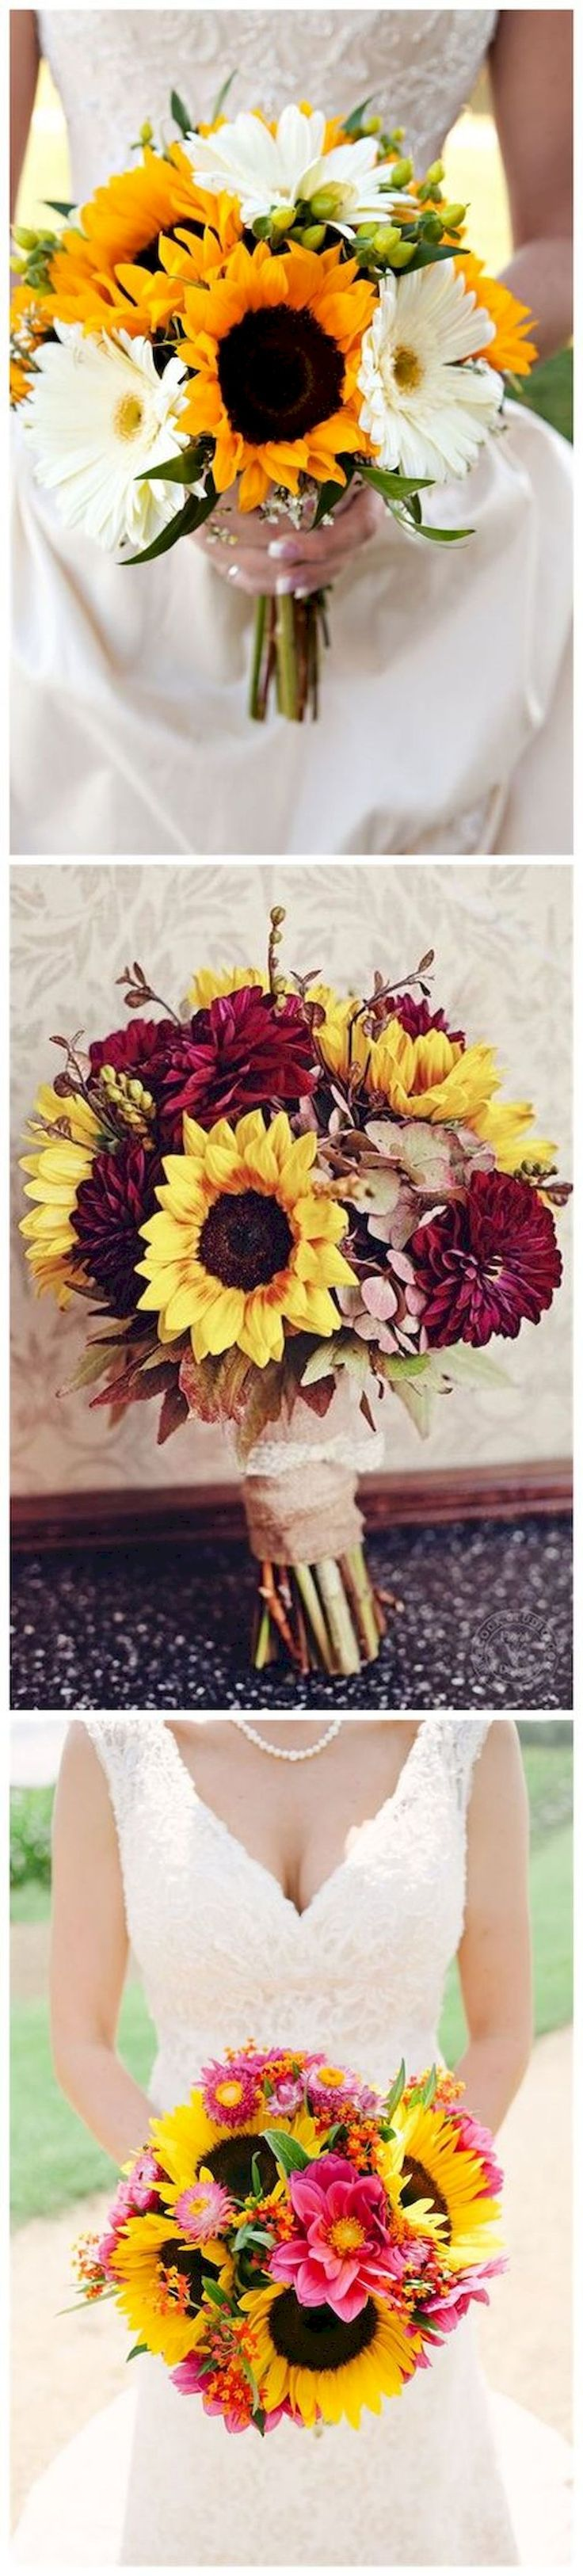 Nice 101+ Country Rustic Sunflower Wedding Theme Ideas https://bitecloth.com/2017/07/18/101-country-rustic-sunflower-wedding-theme-ideas/